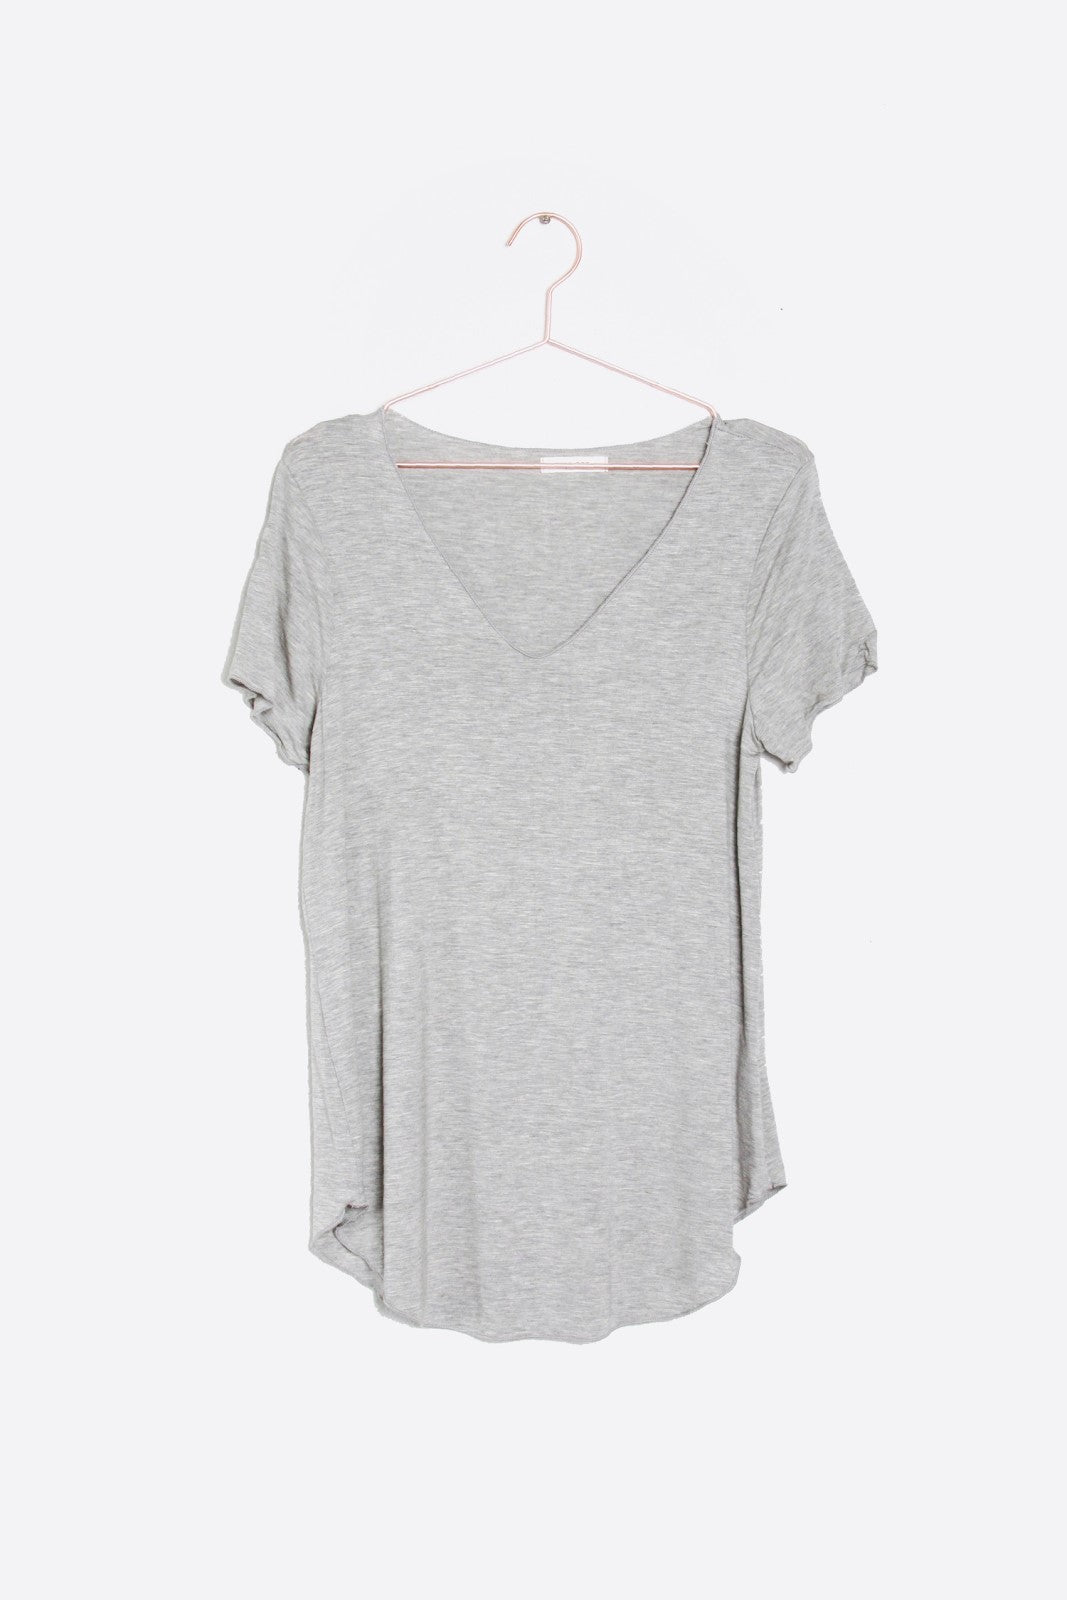 Everyday Grey Tee